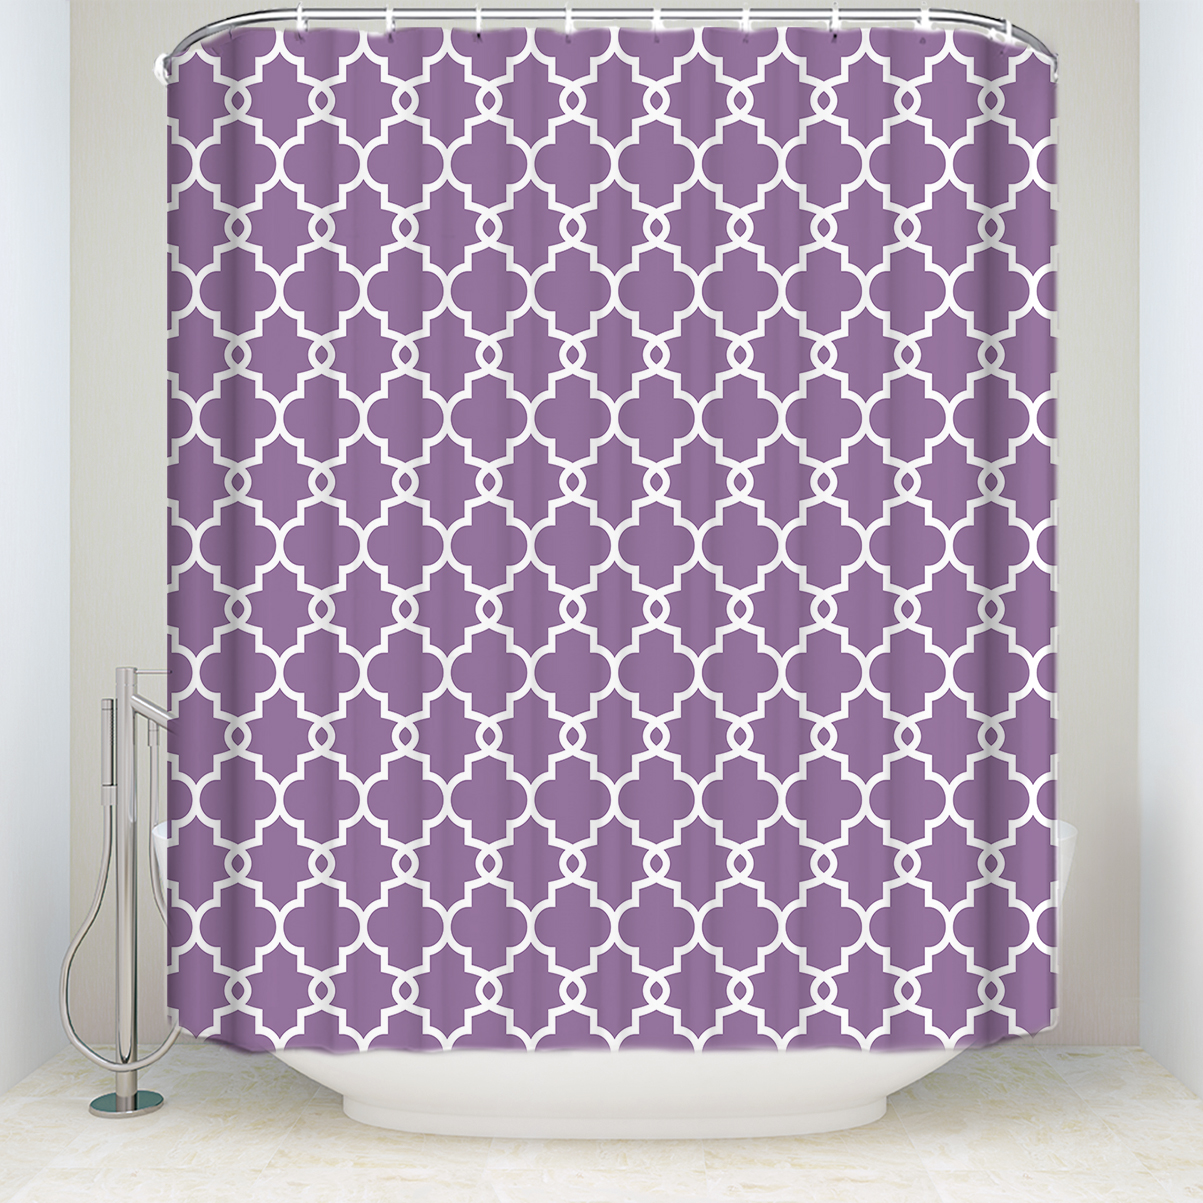 Us 18 51 40 Off New Arrival Waterproof Moroccan Style Geometric Pattern Shower Curtain Polyester Fabric Purple Bathroom Curtains For Home Decor In